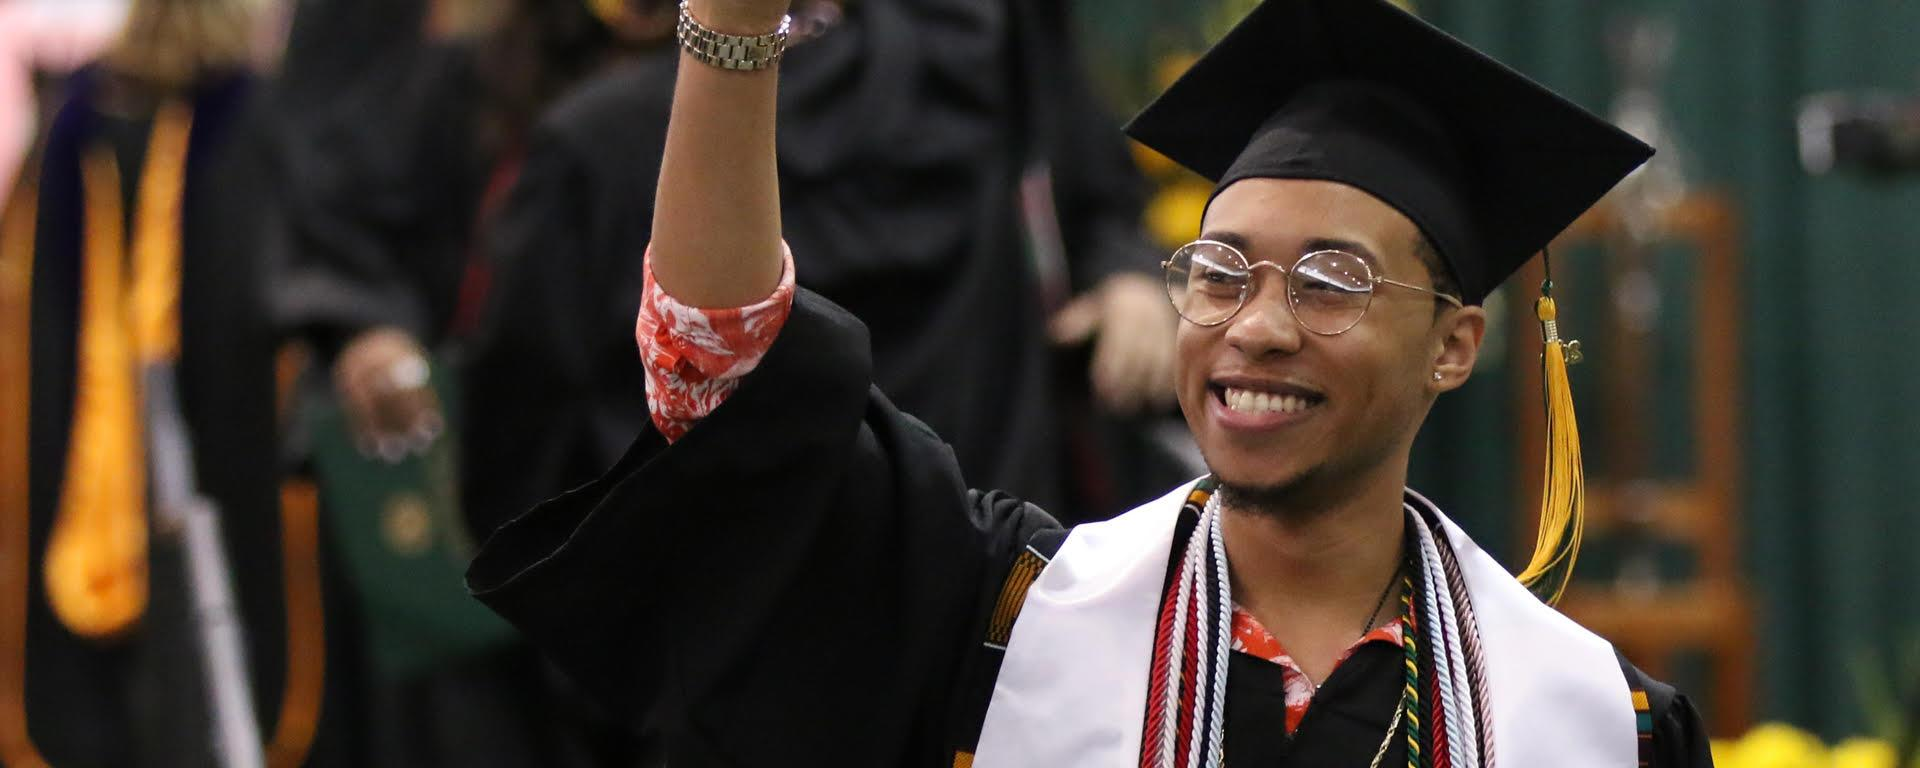 Students celebrate during Commencement